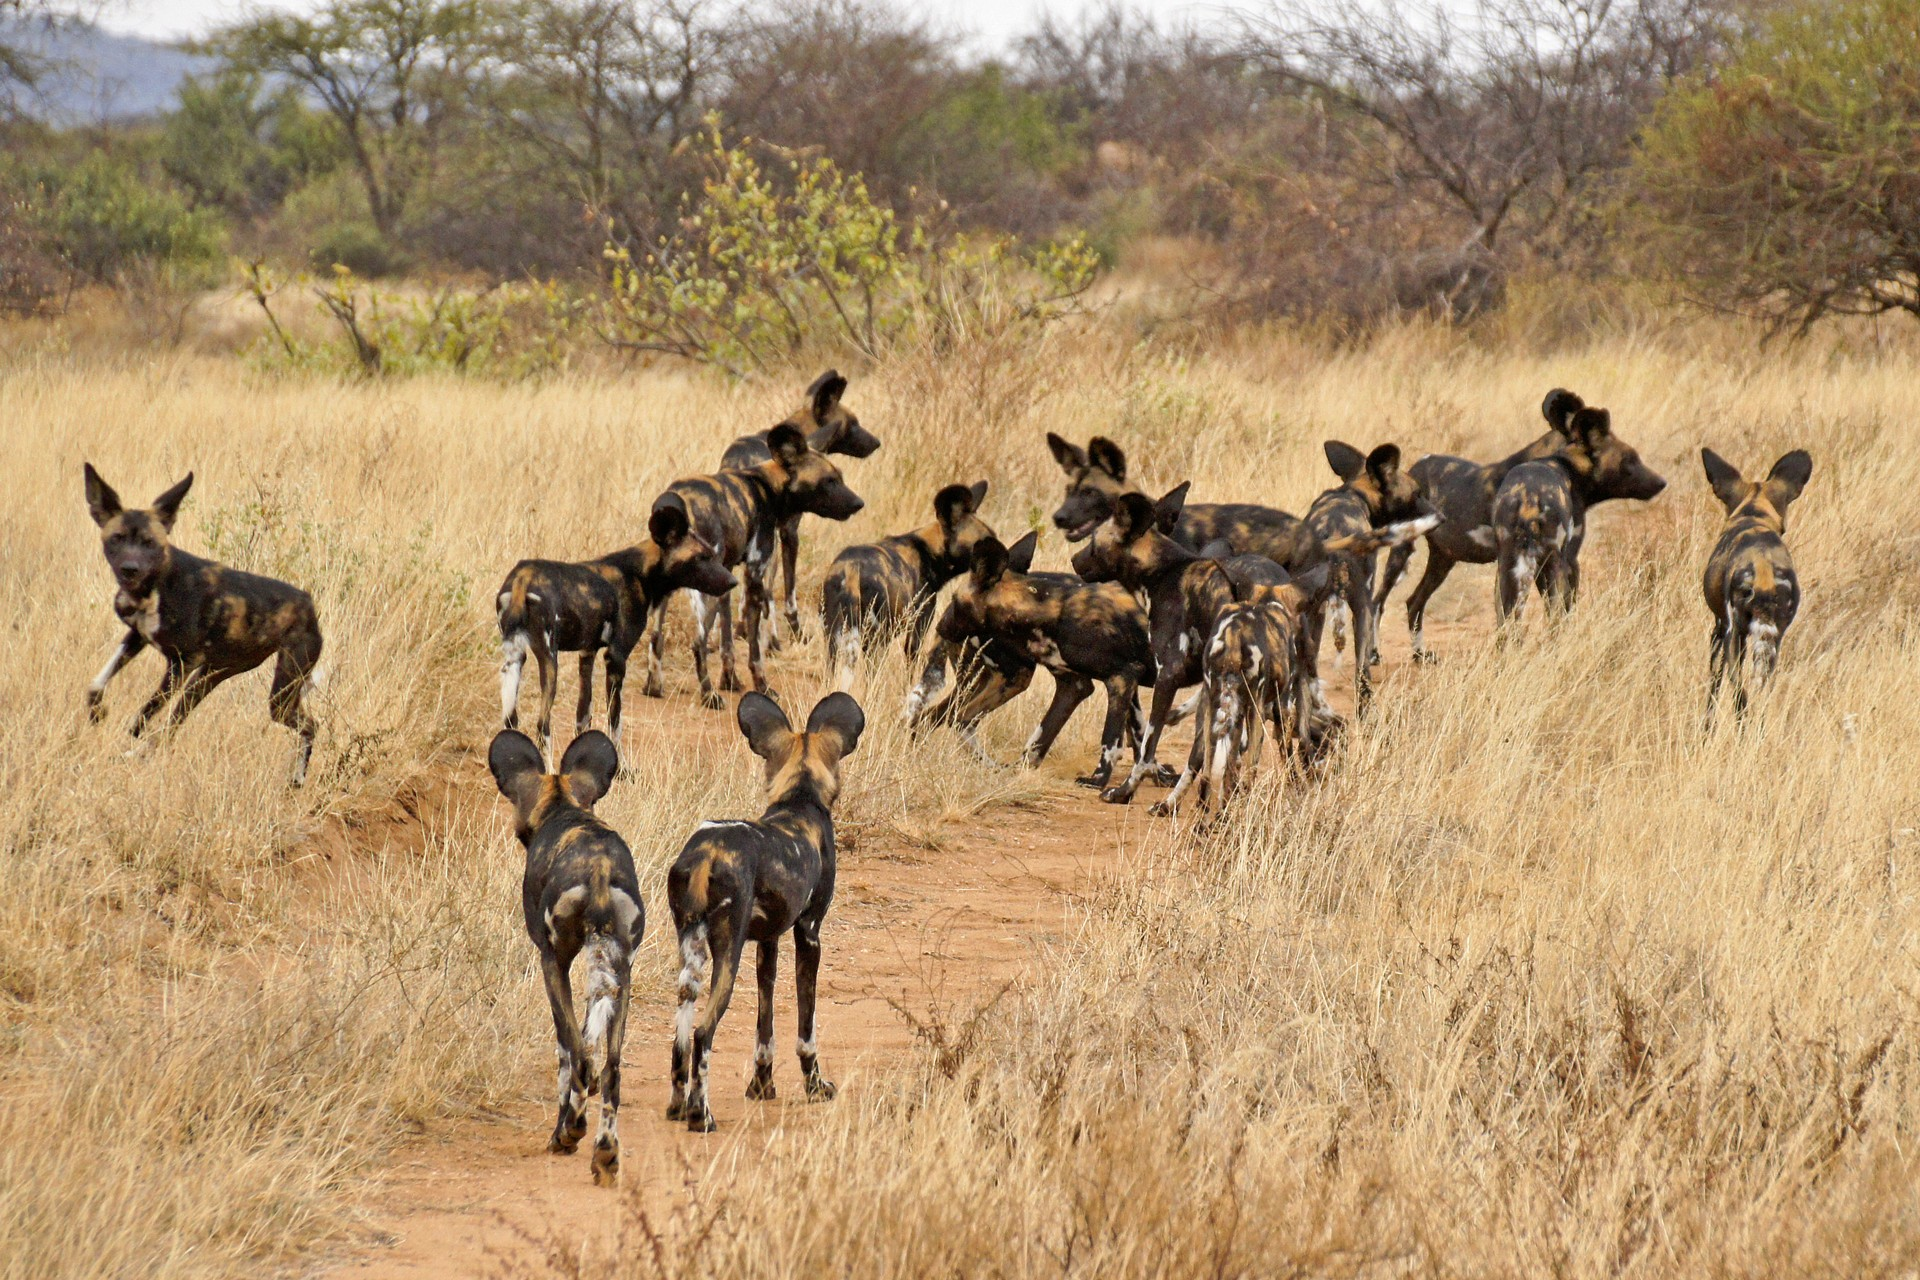 Pack of African wild dog in the wild